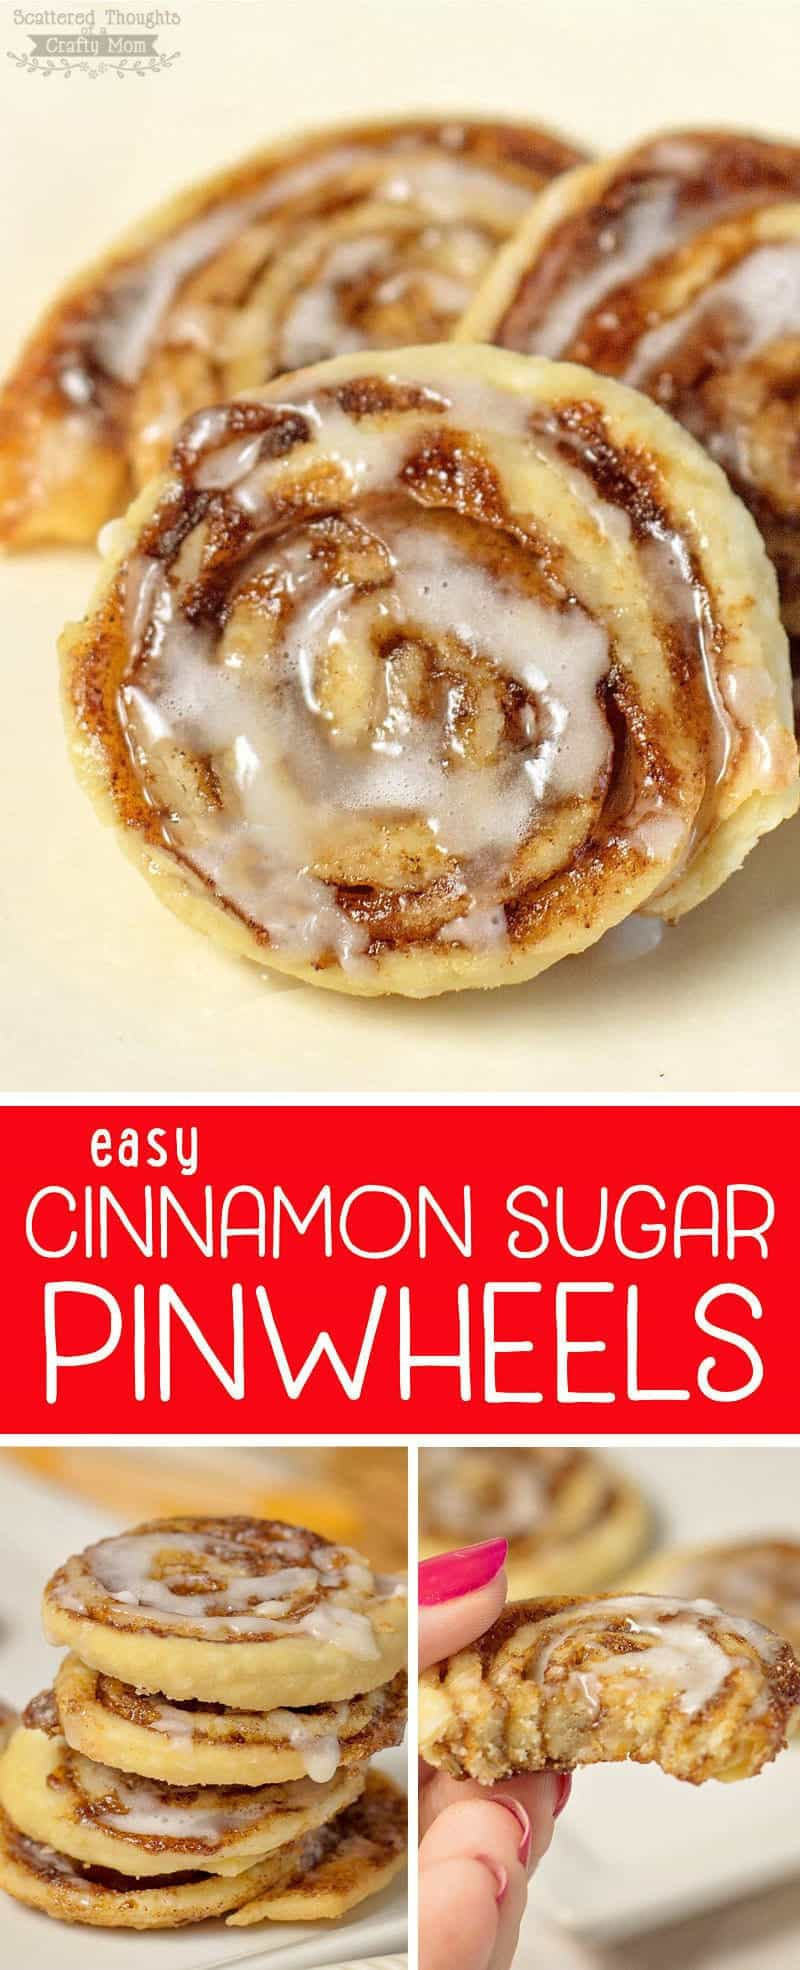 Cinnamon Sugar Pinwheel cookies - The perfect recipe to use up leftover pie crust!